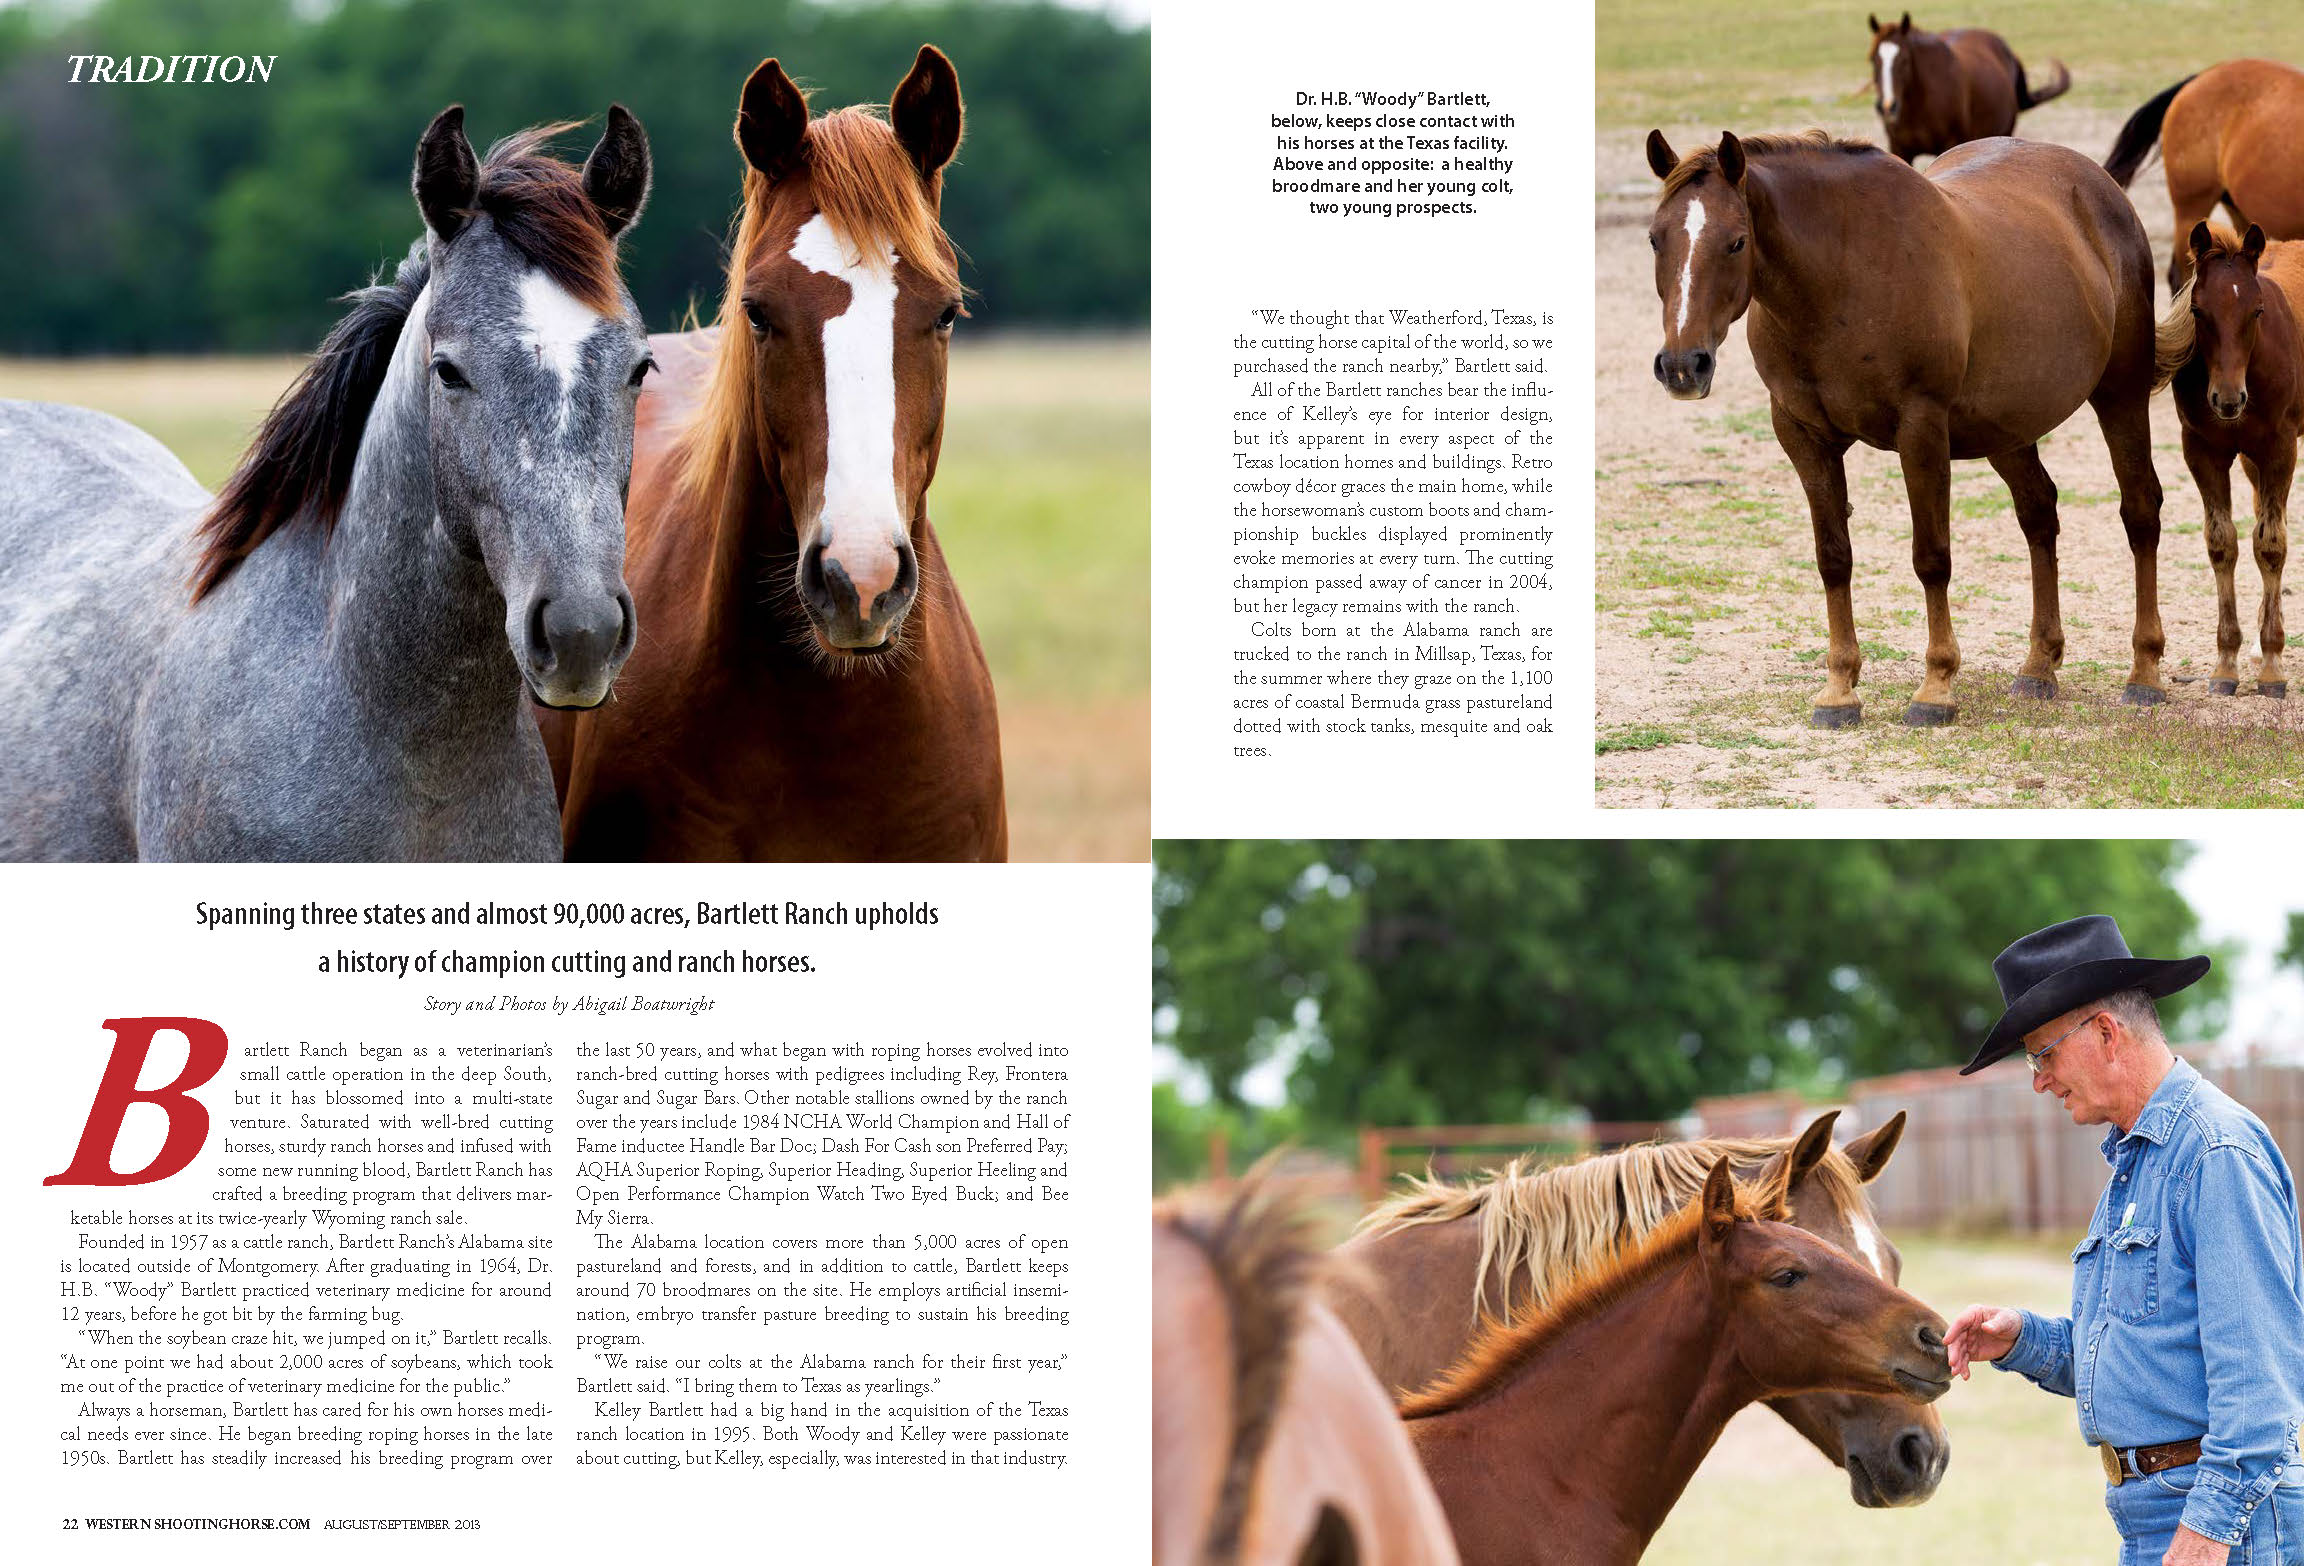 WSH Tradition Barlett Ranch_Page_2.jpg